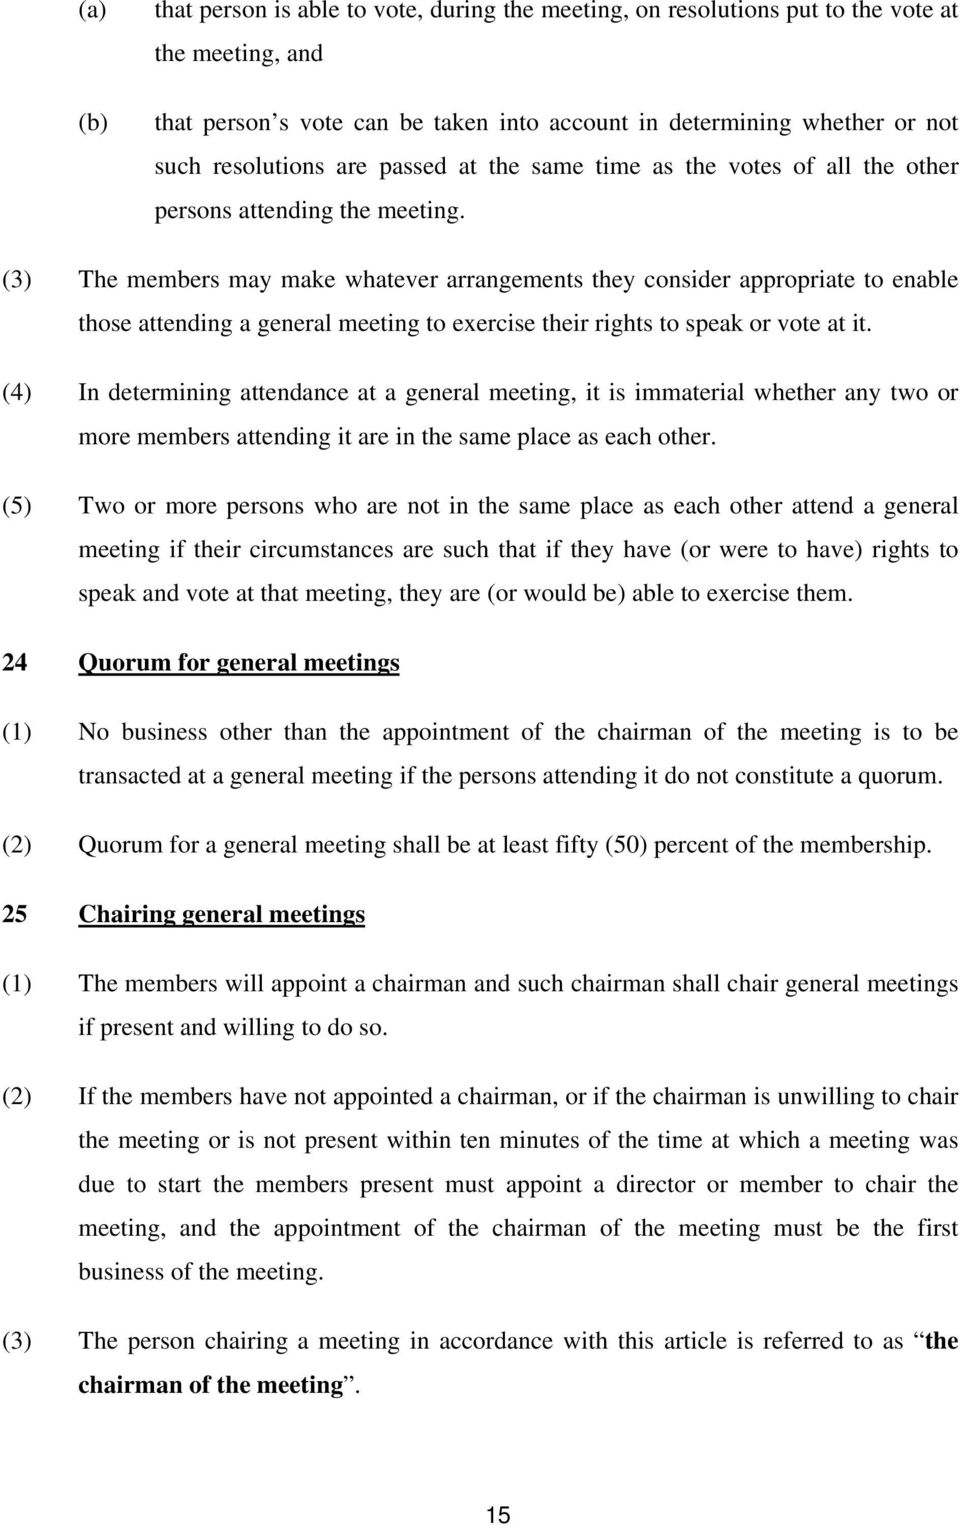 (3) The members may make whatever arrangements they consider appropriate to enable those attending a general meeting to exercise their rights to speak or vote at it.